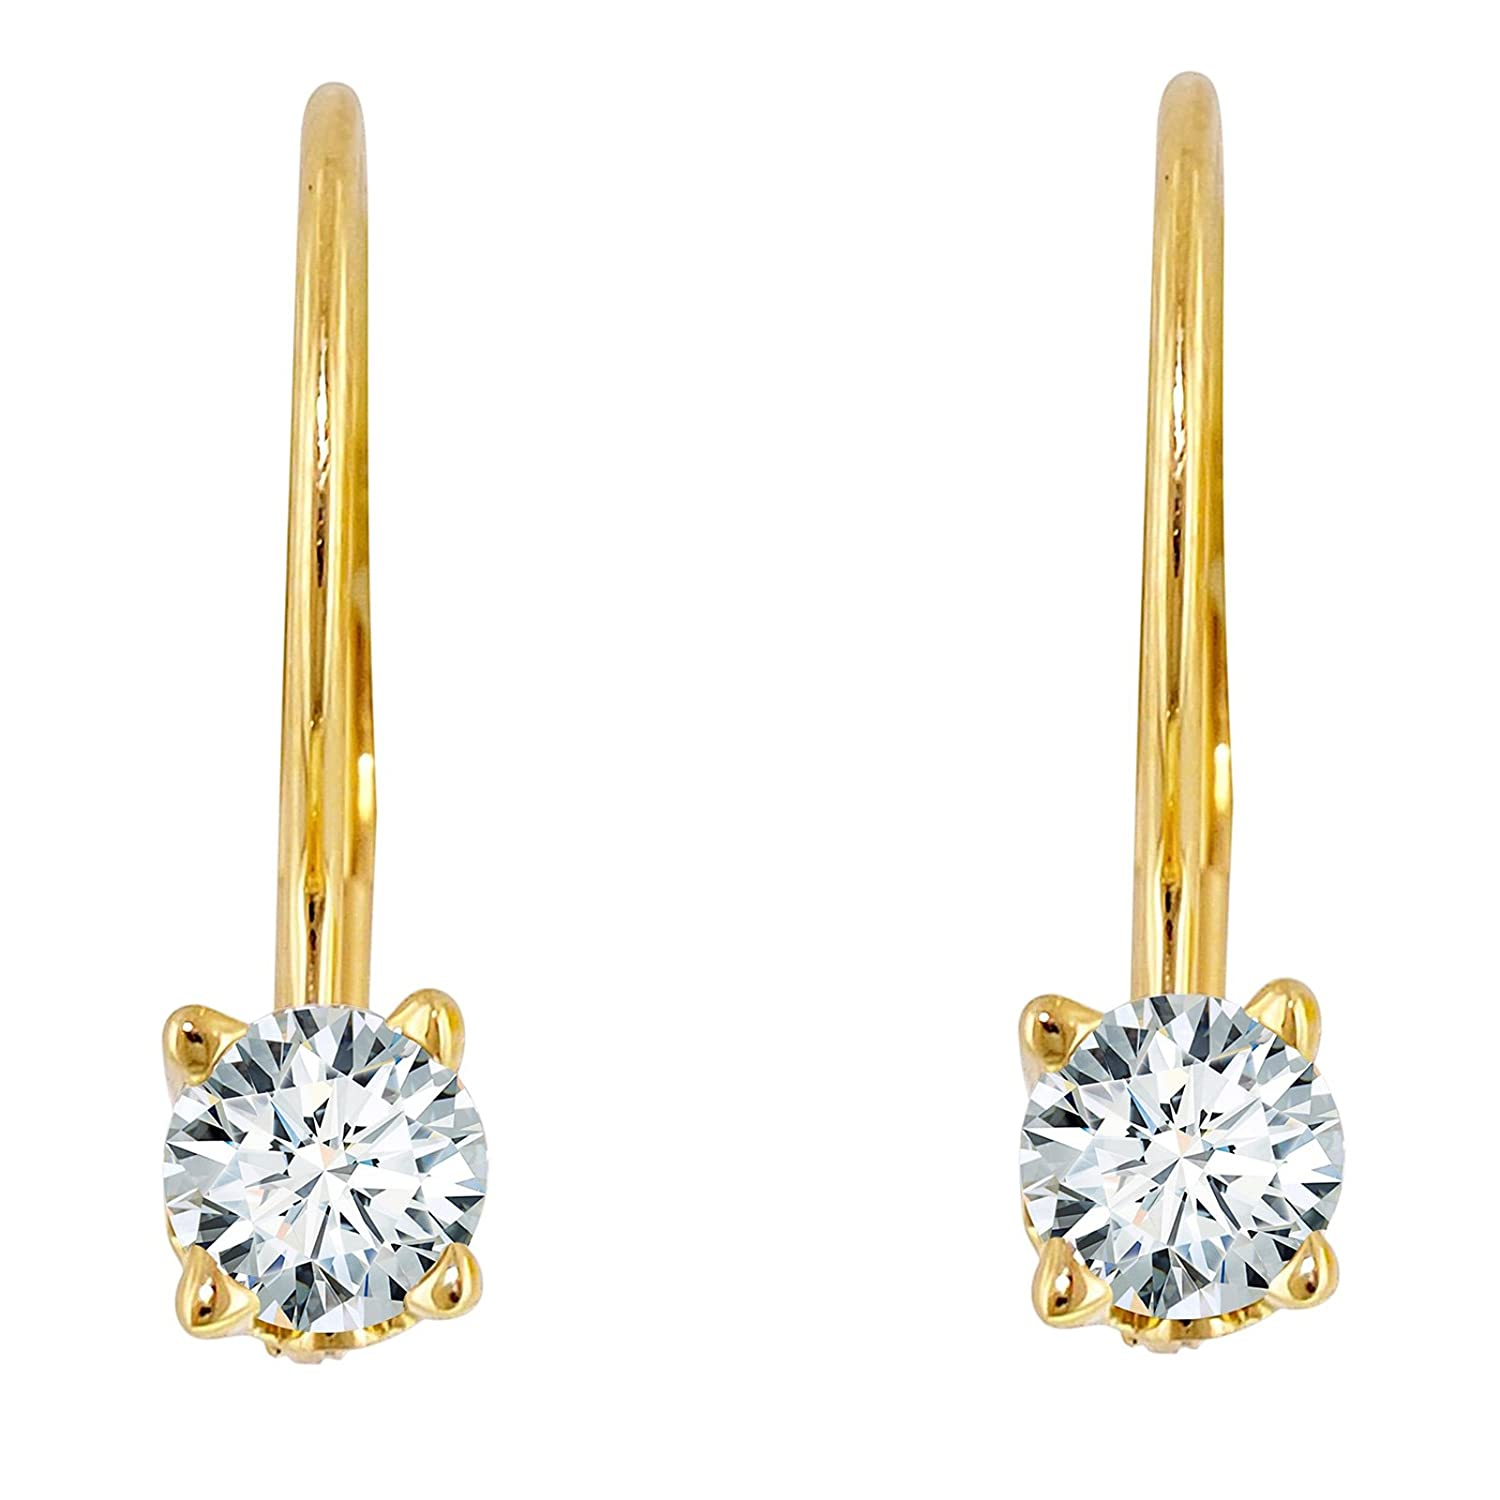 Clara Pucci 0.40 CT BRILLIANT ROUND CUT Solitaire DROP DANGLE LEVERBACK EARRINGS 14K Yellow GOLD